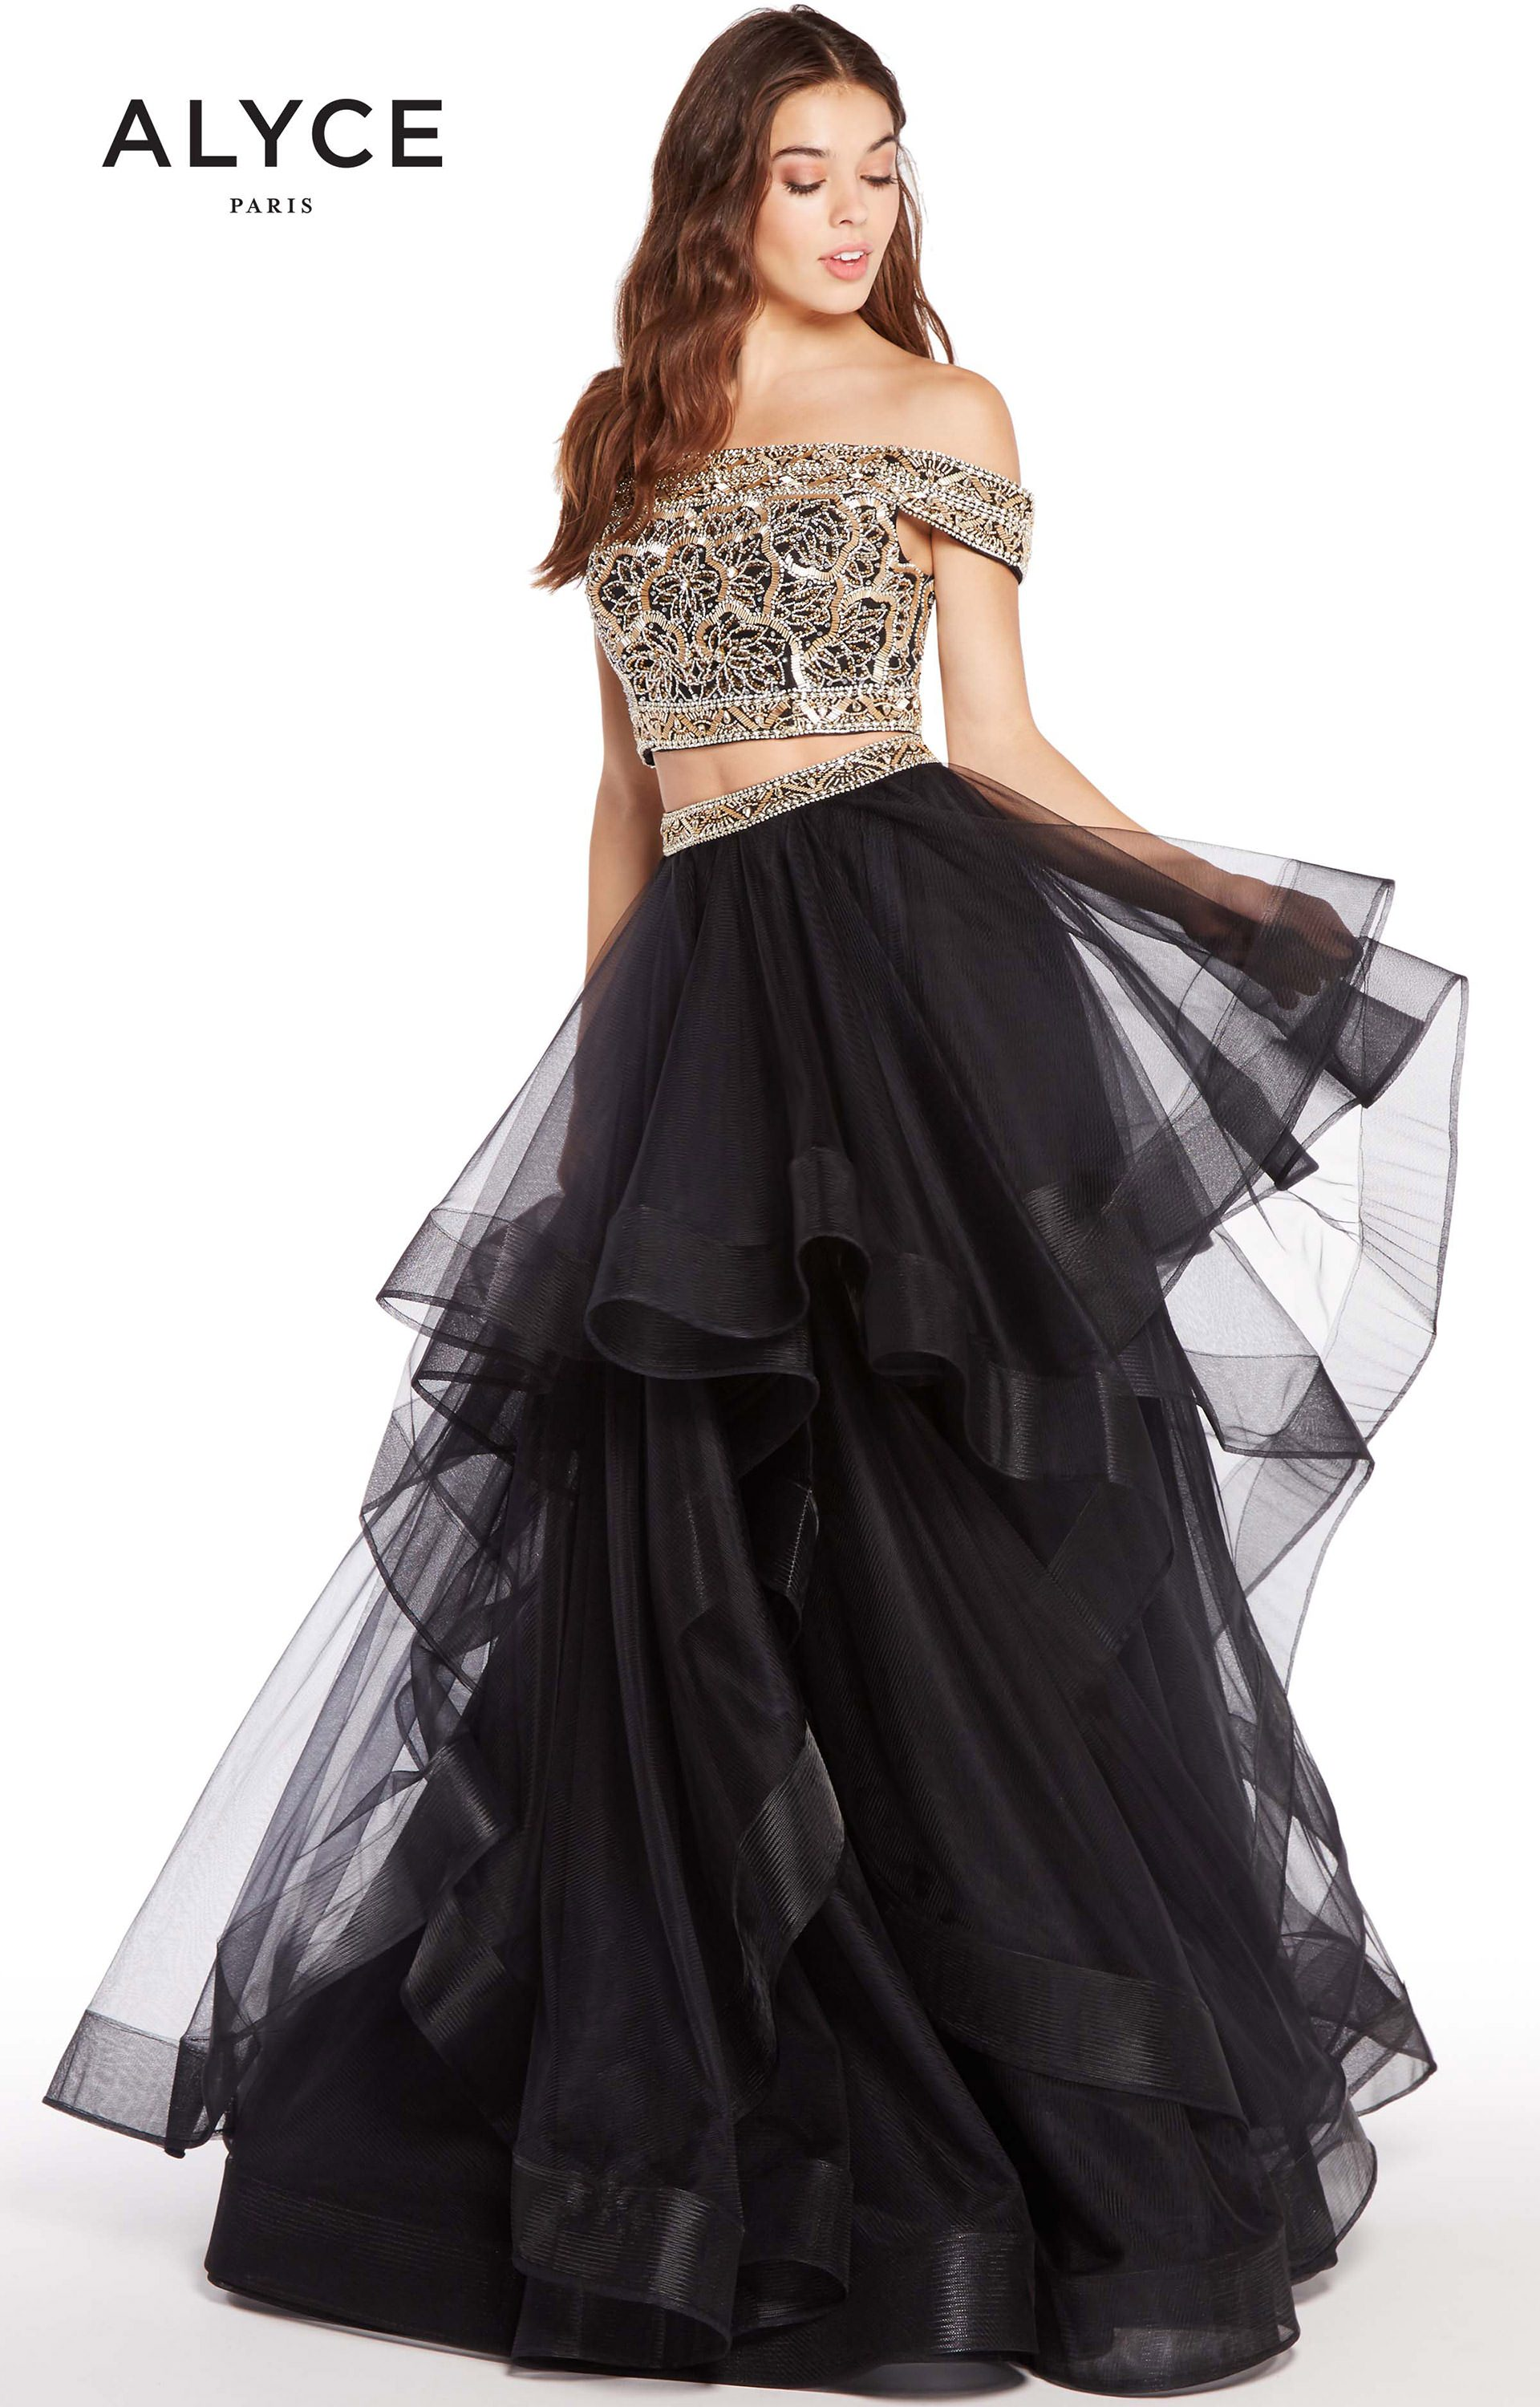 Alyce Paris 60190 - 2 Piece Off the Shoulder Tulle Ball Gown Prom Dress